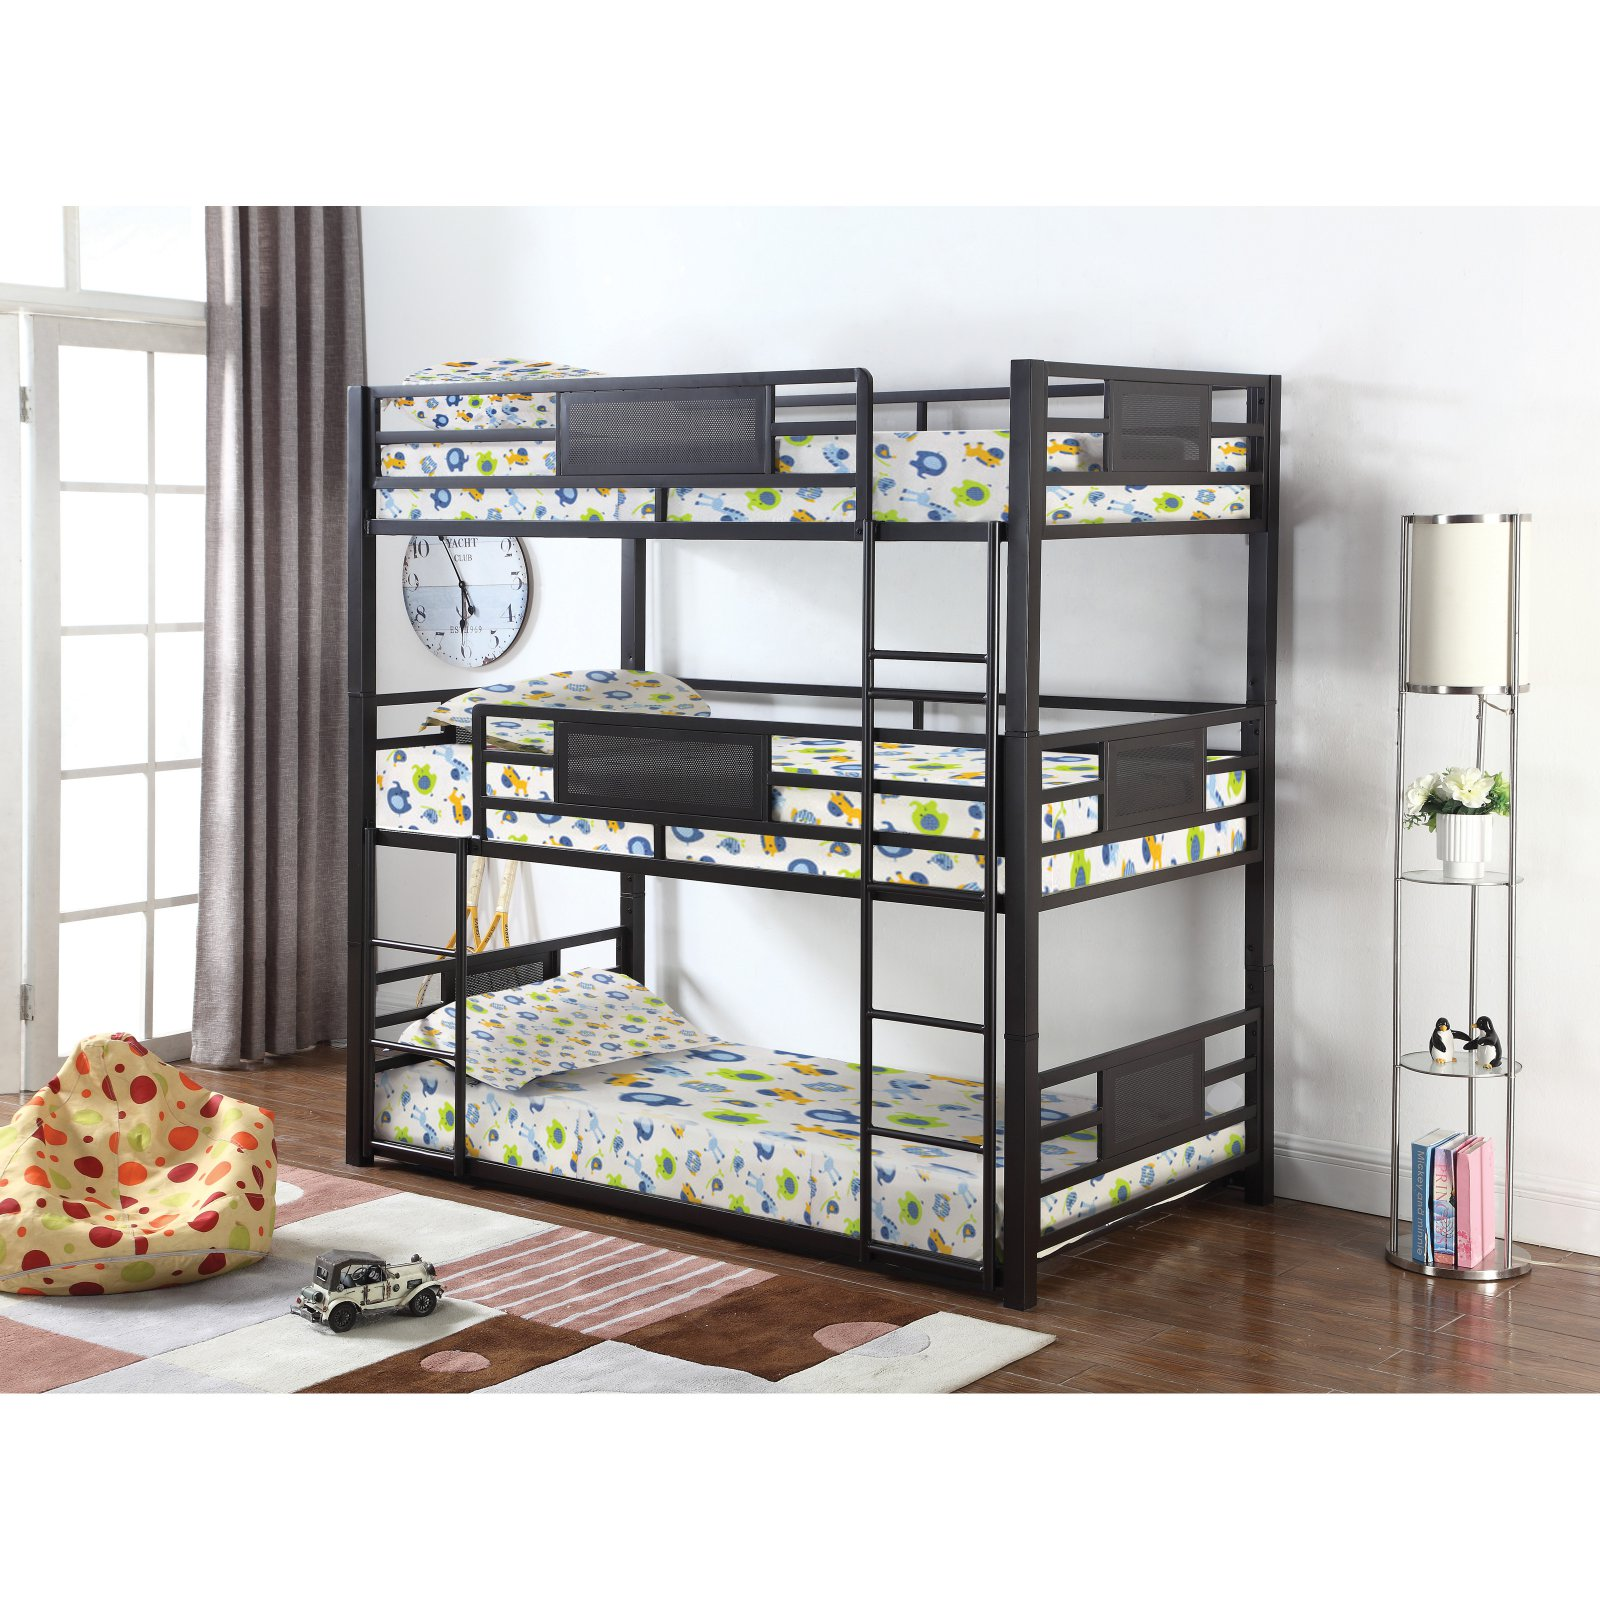 Coaster Rogen triple bunk bed in twin.  Finished in dark bronze, contructed with steel.